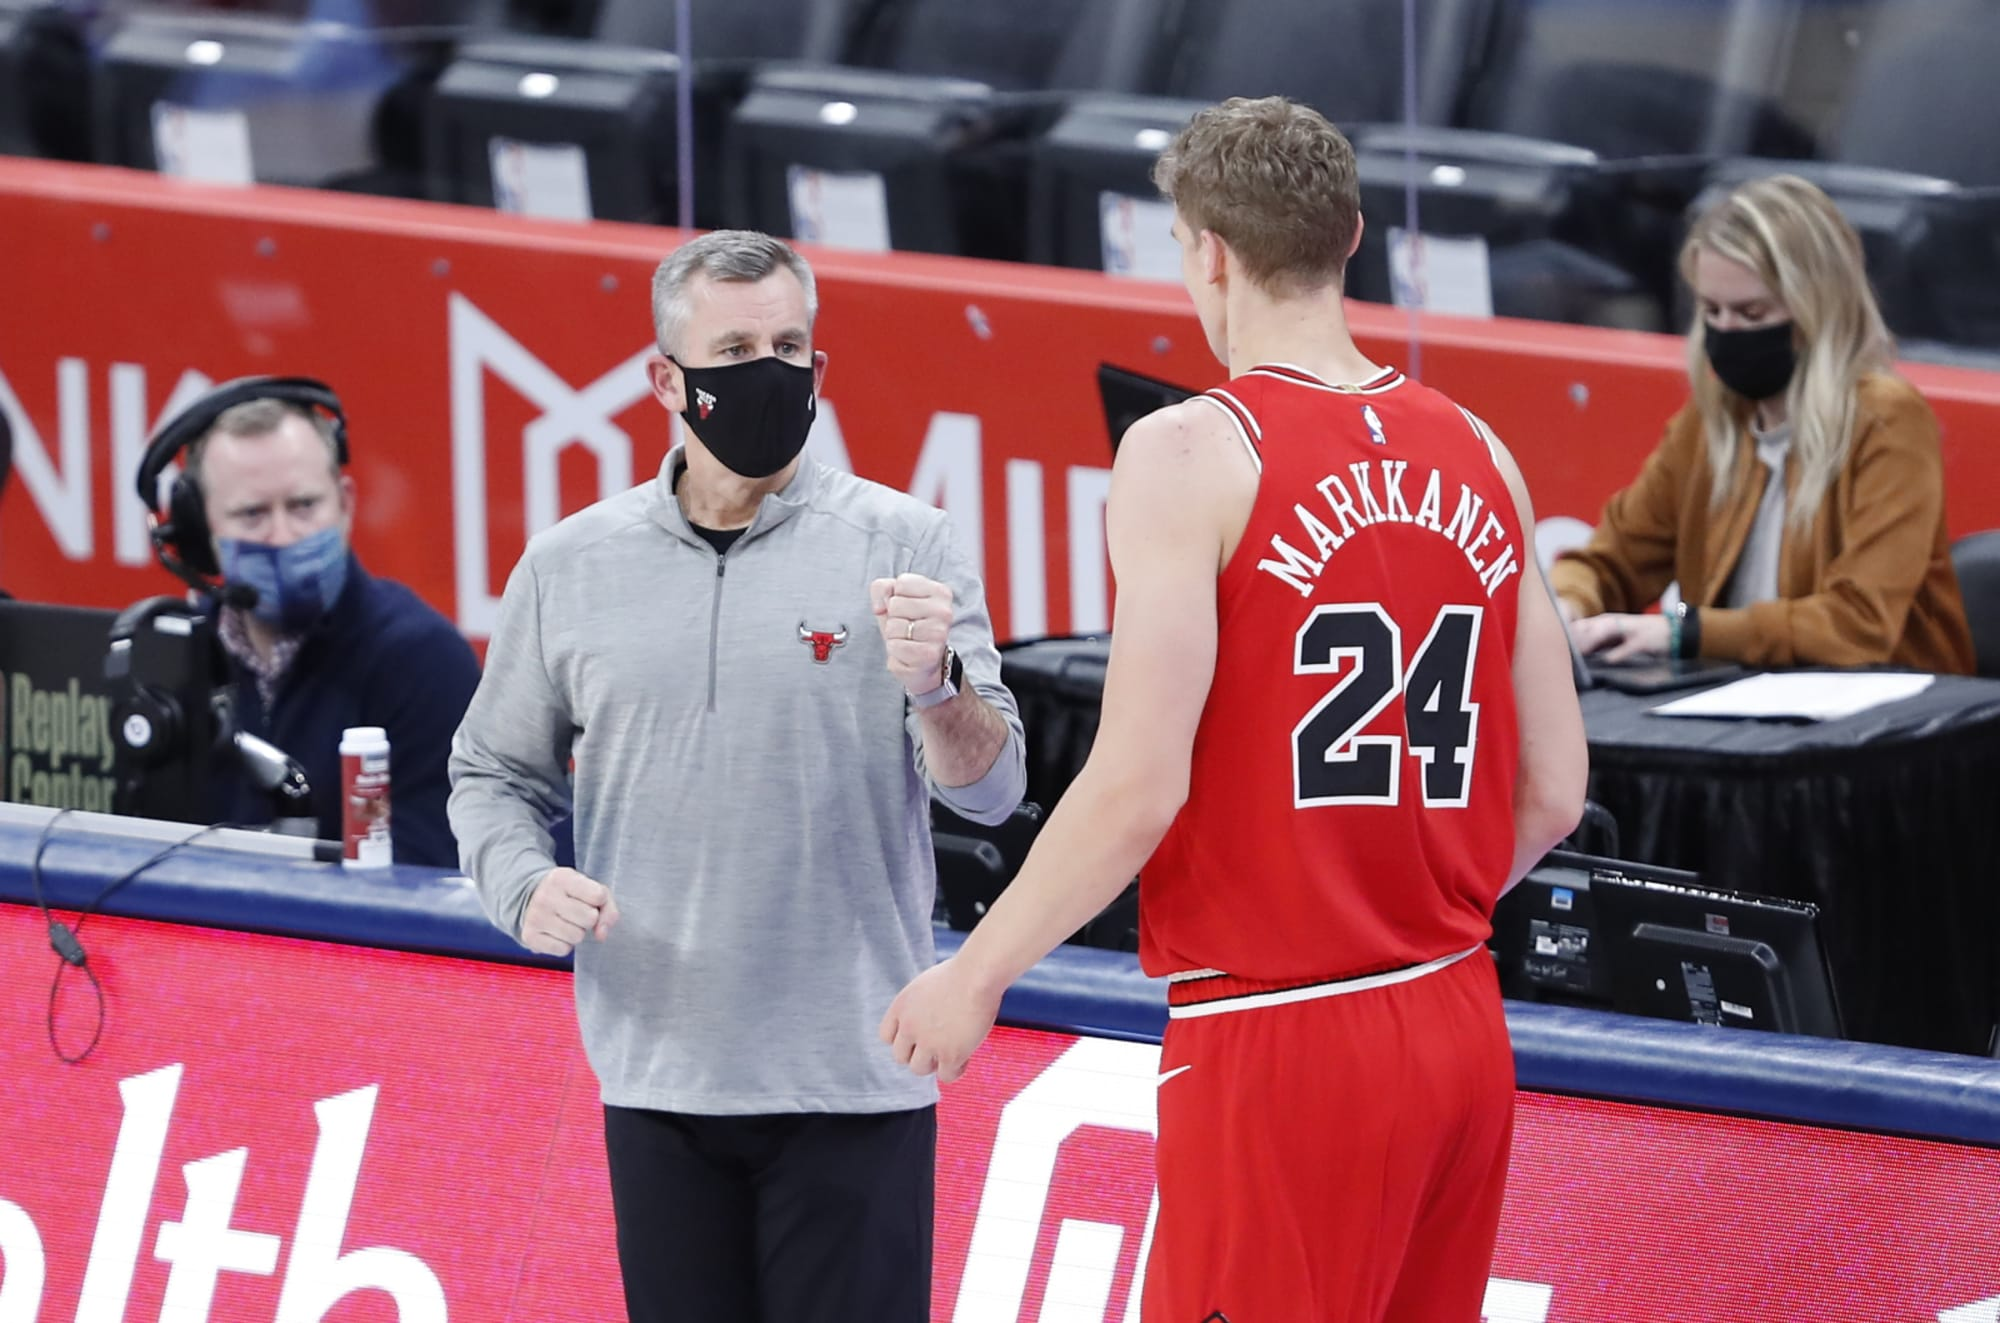 Chicago Bulls: Billy Donovan praises Markkanen when asked about his future with team